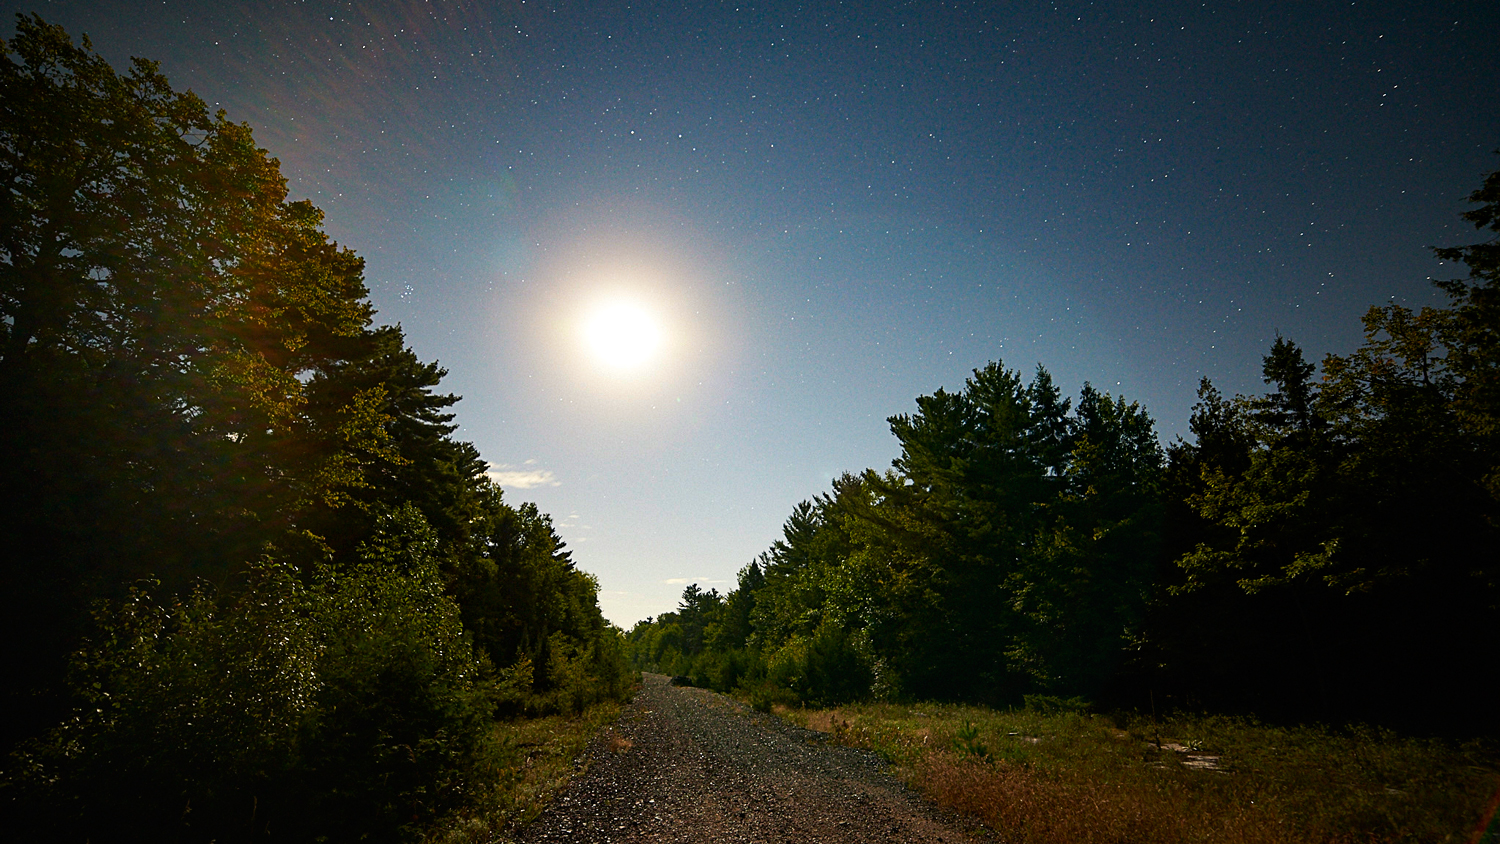 Some lens flare off of the moon, which lit up the night sky like the sun.